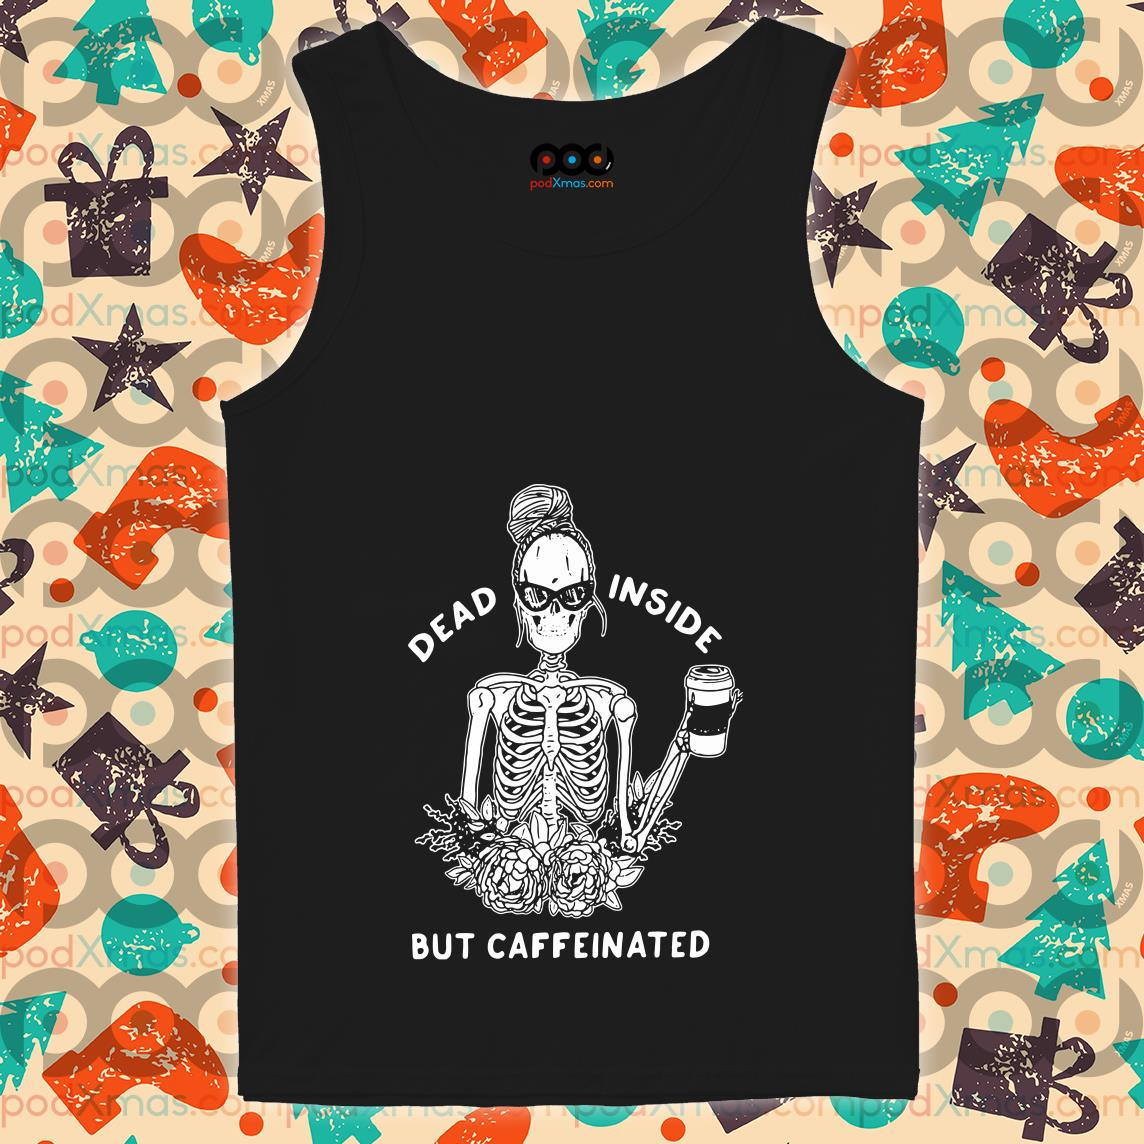 Mad Over Shirts Books Check Em Out Unisex Premium Tank Top